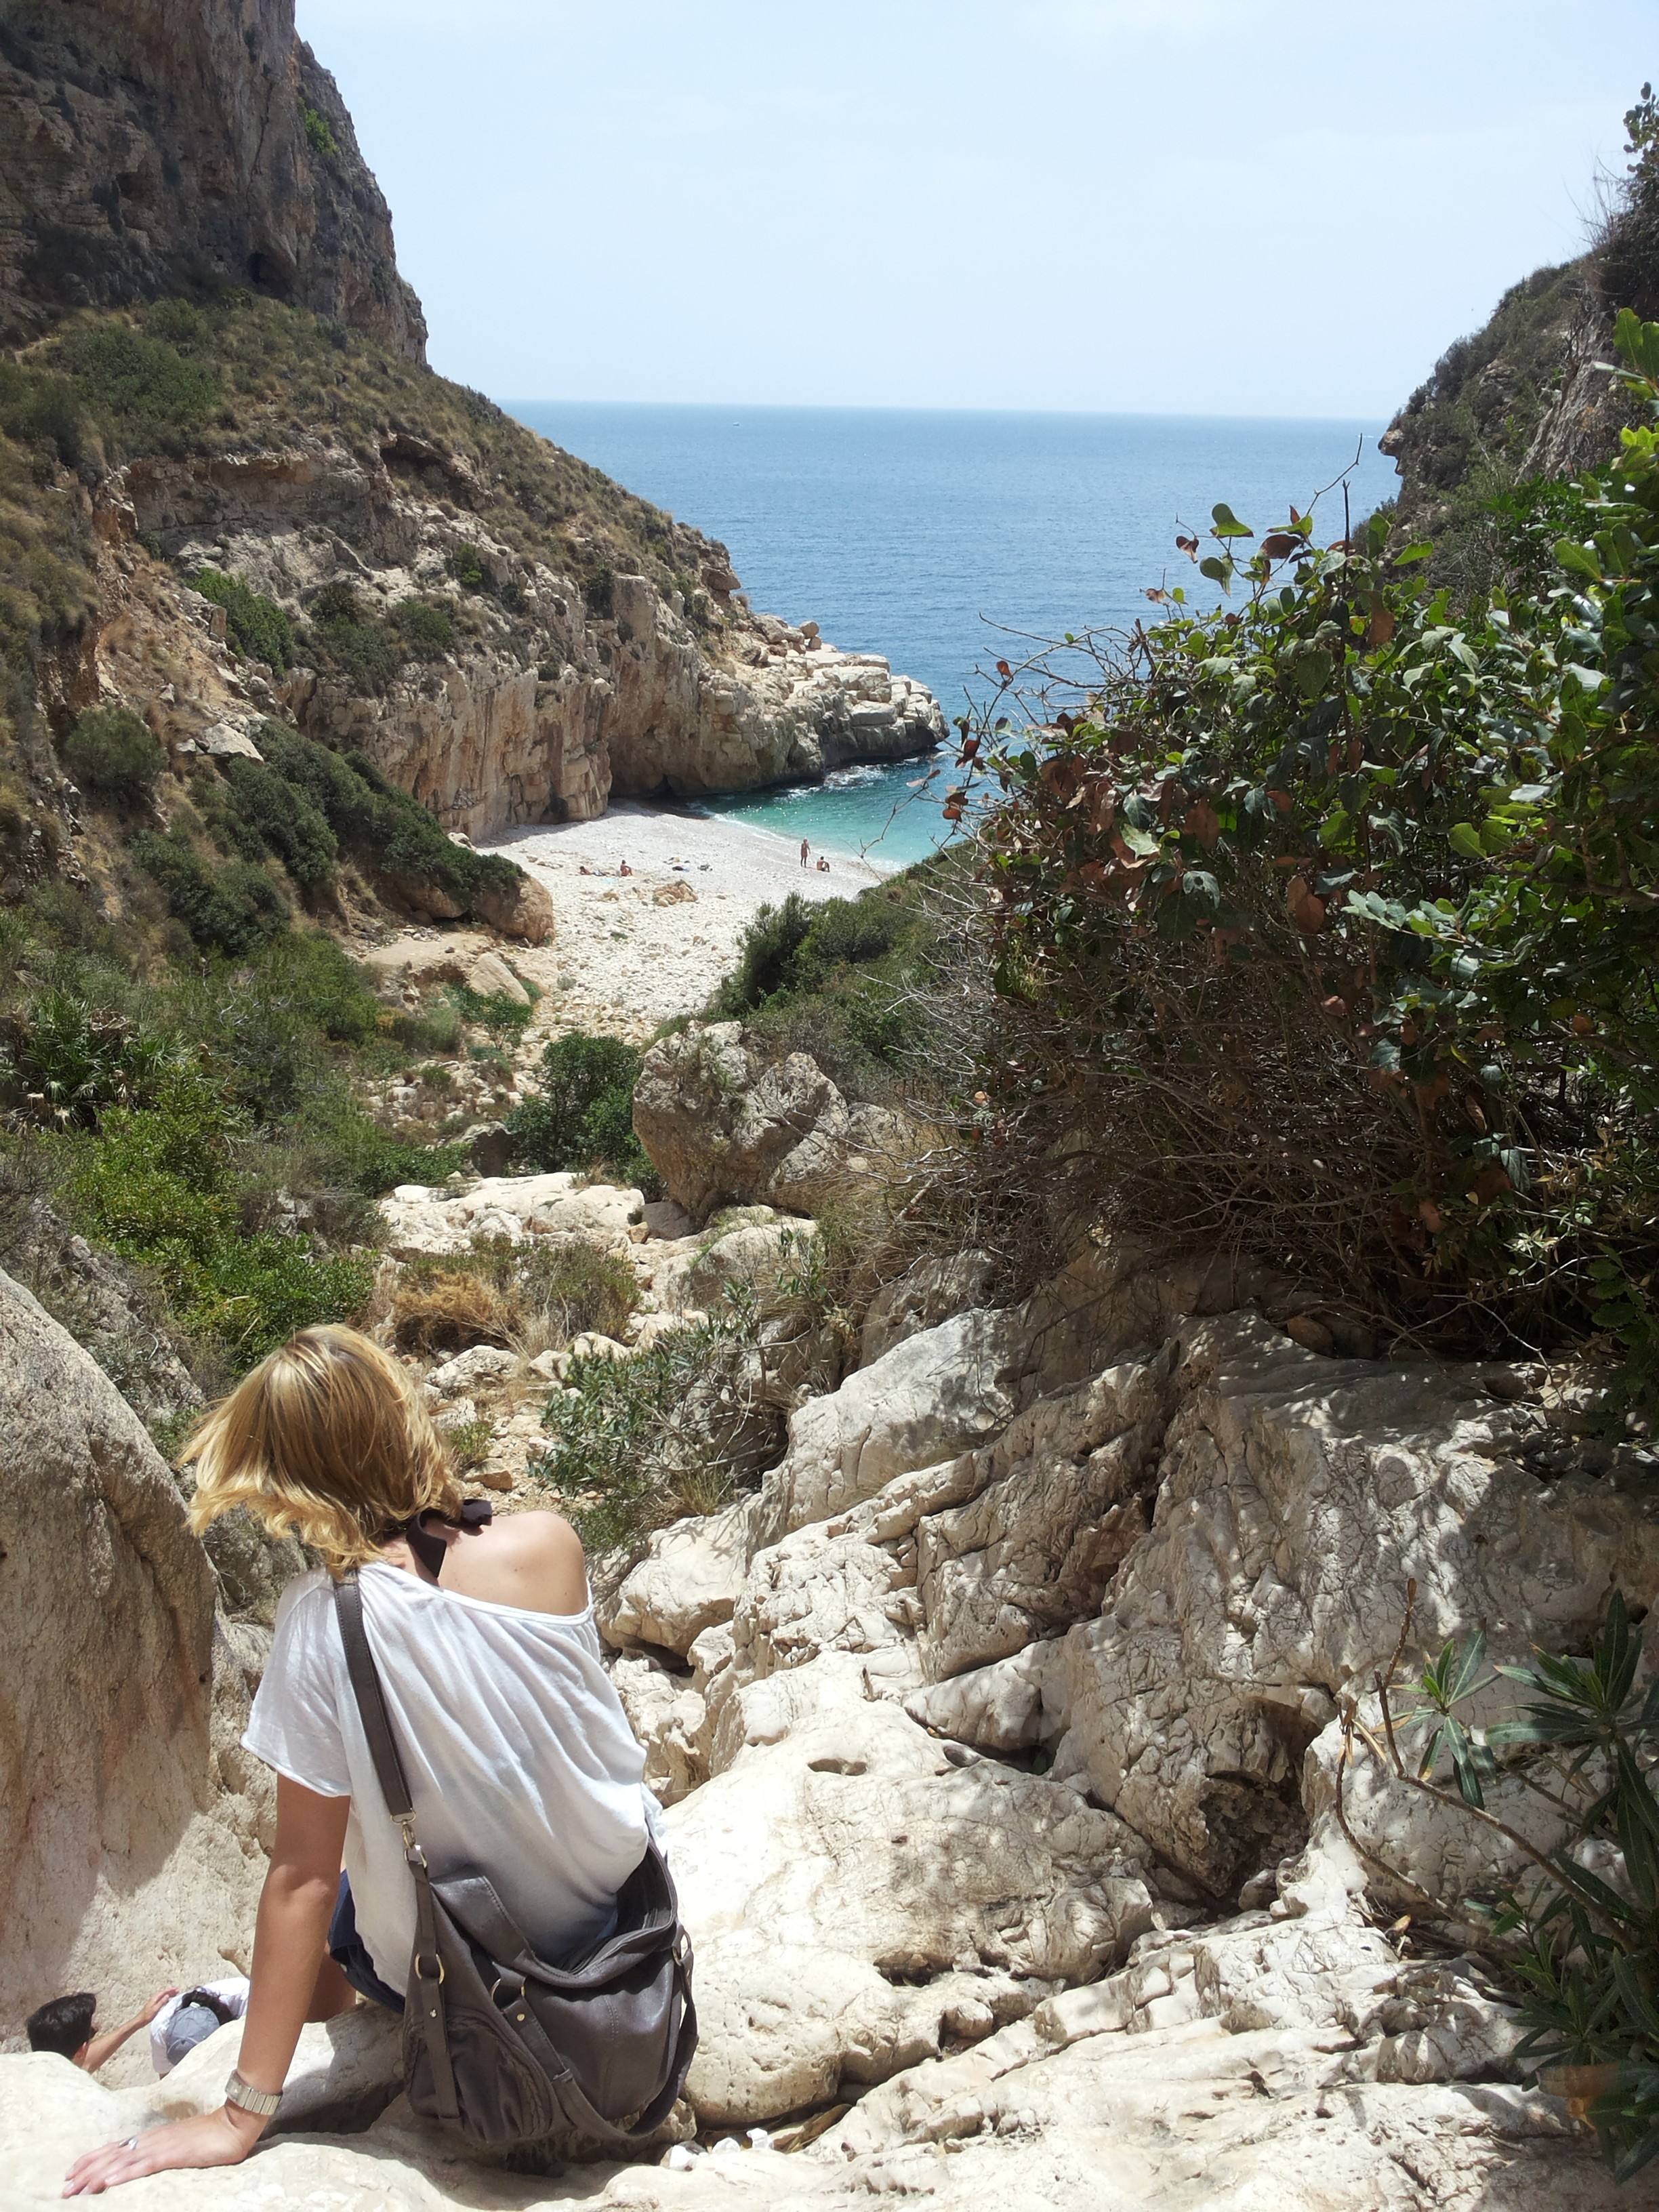 Hiking to an idyllic beach on the Costa Blanca